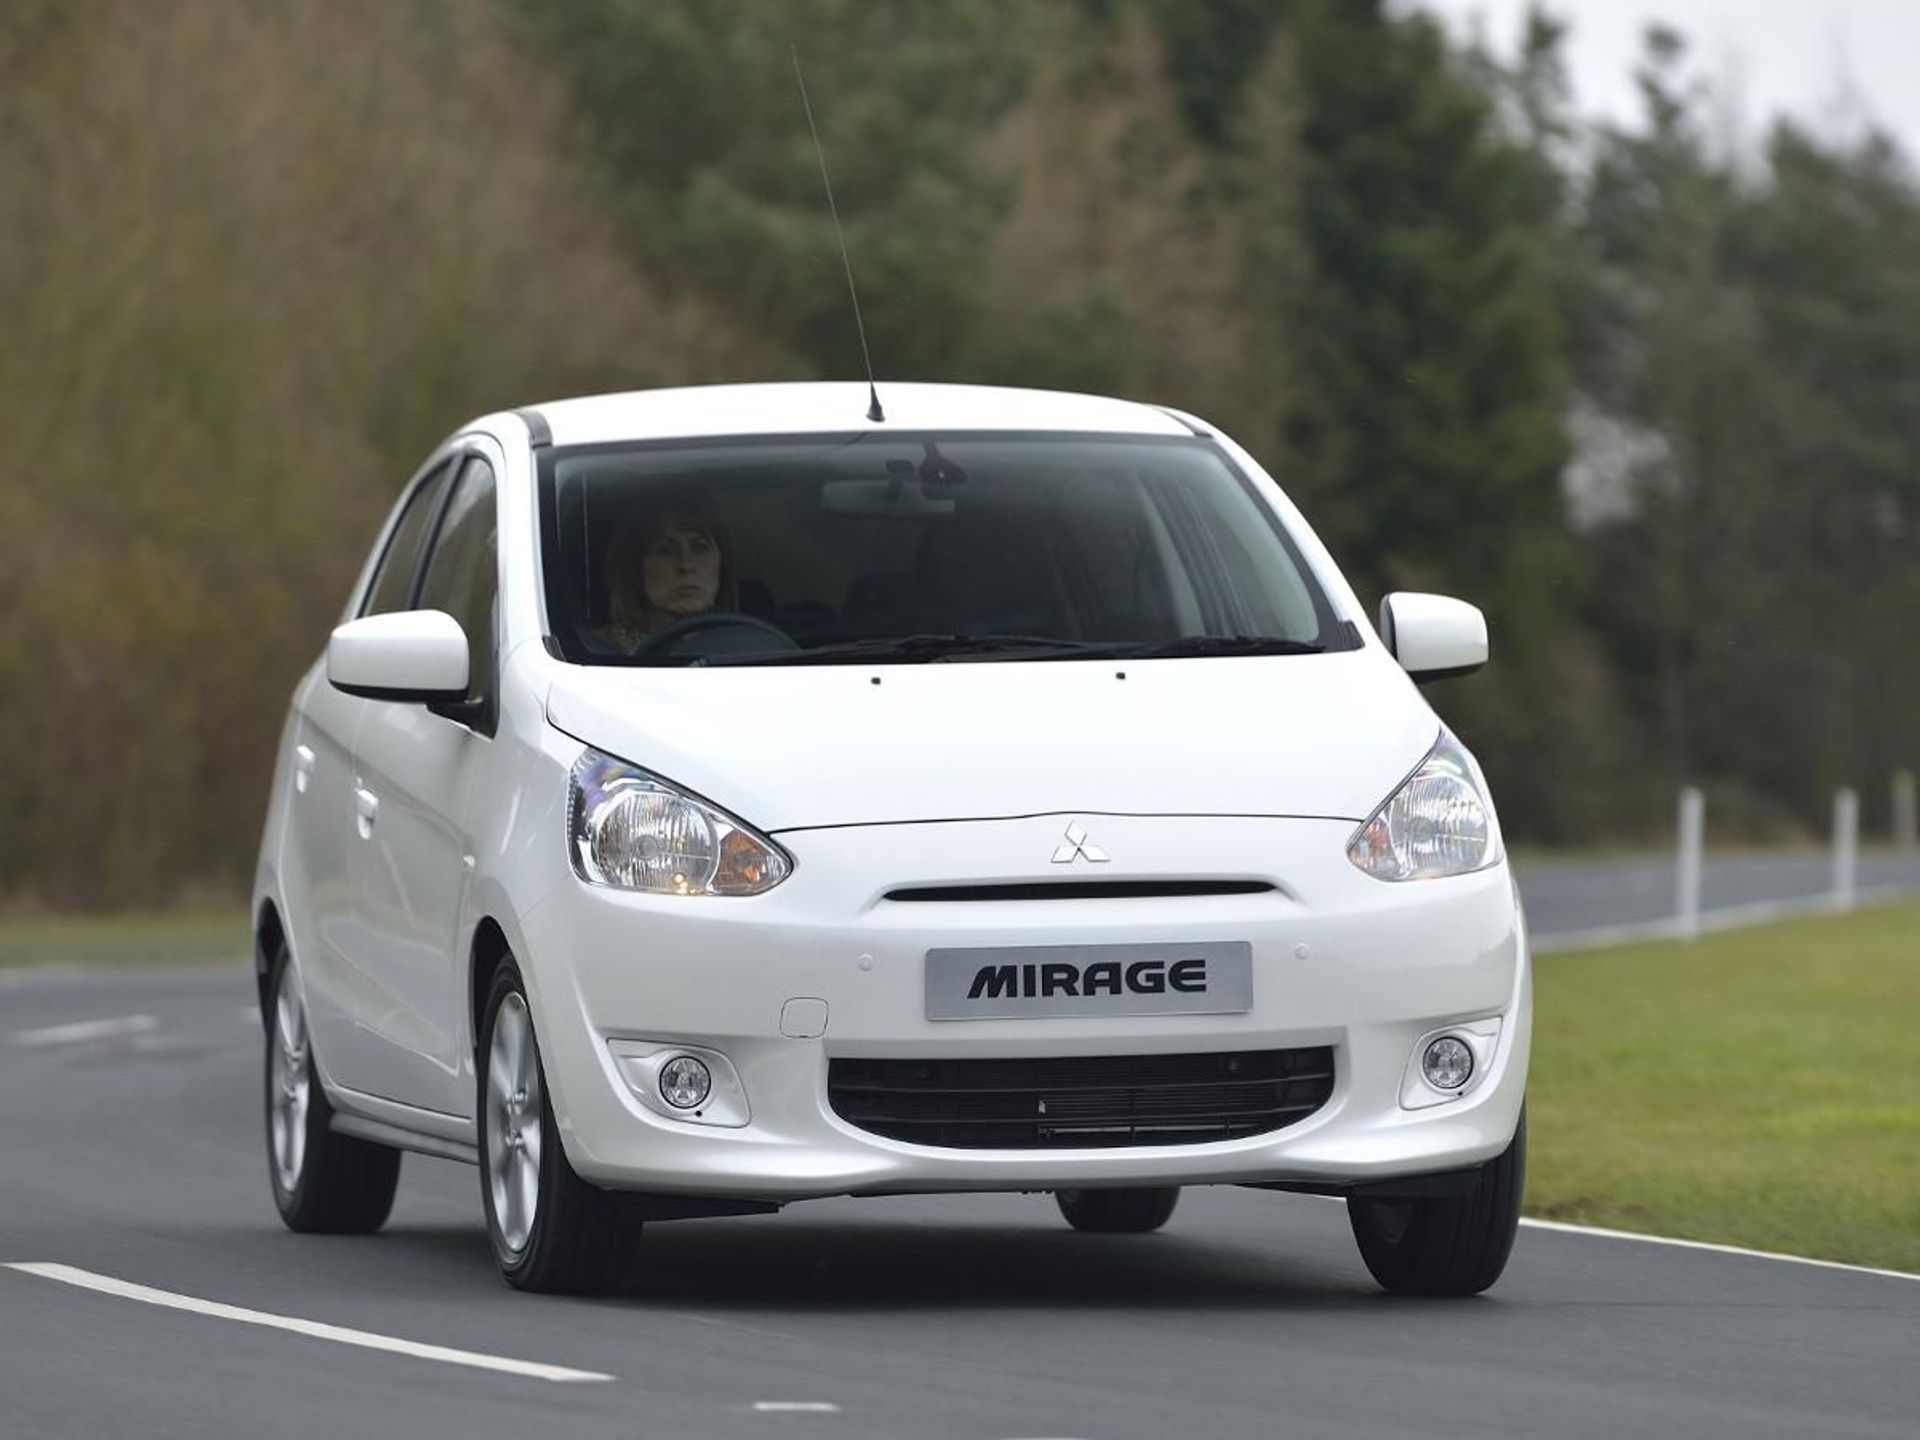 Mitsubishi Mirage First Edition image